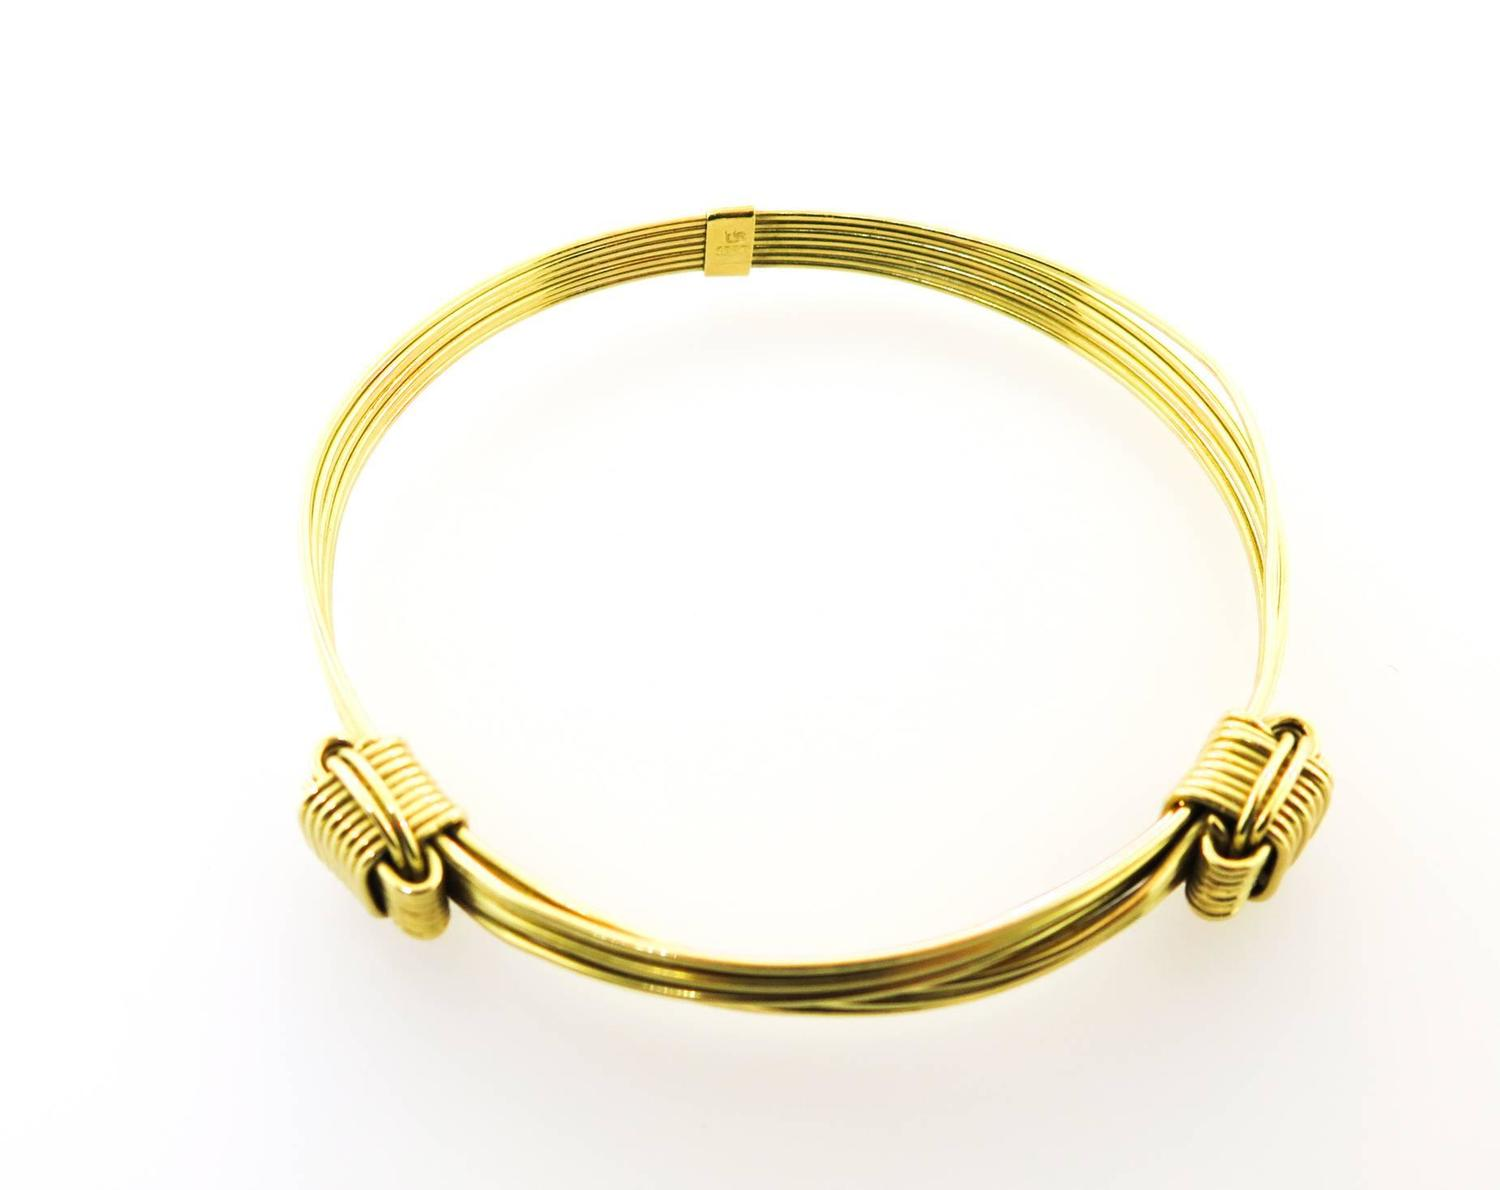 Elephant hair bracelet with gold for men - photo#27